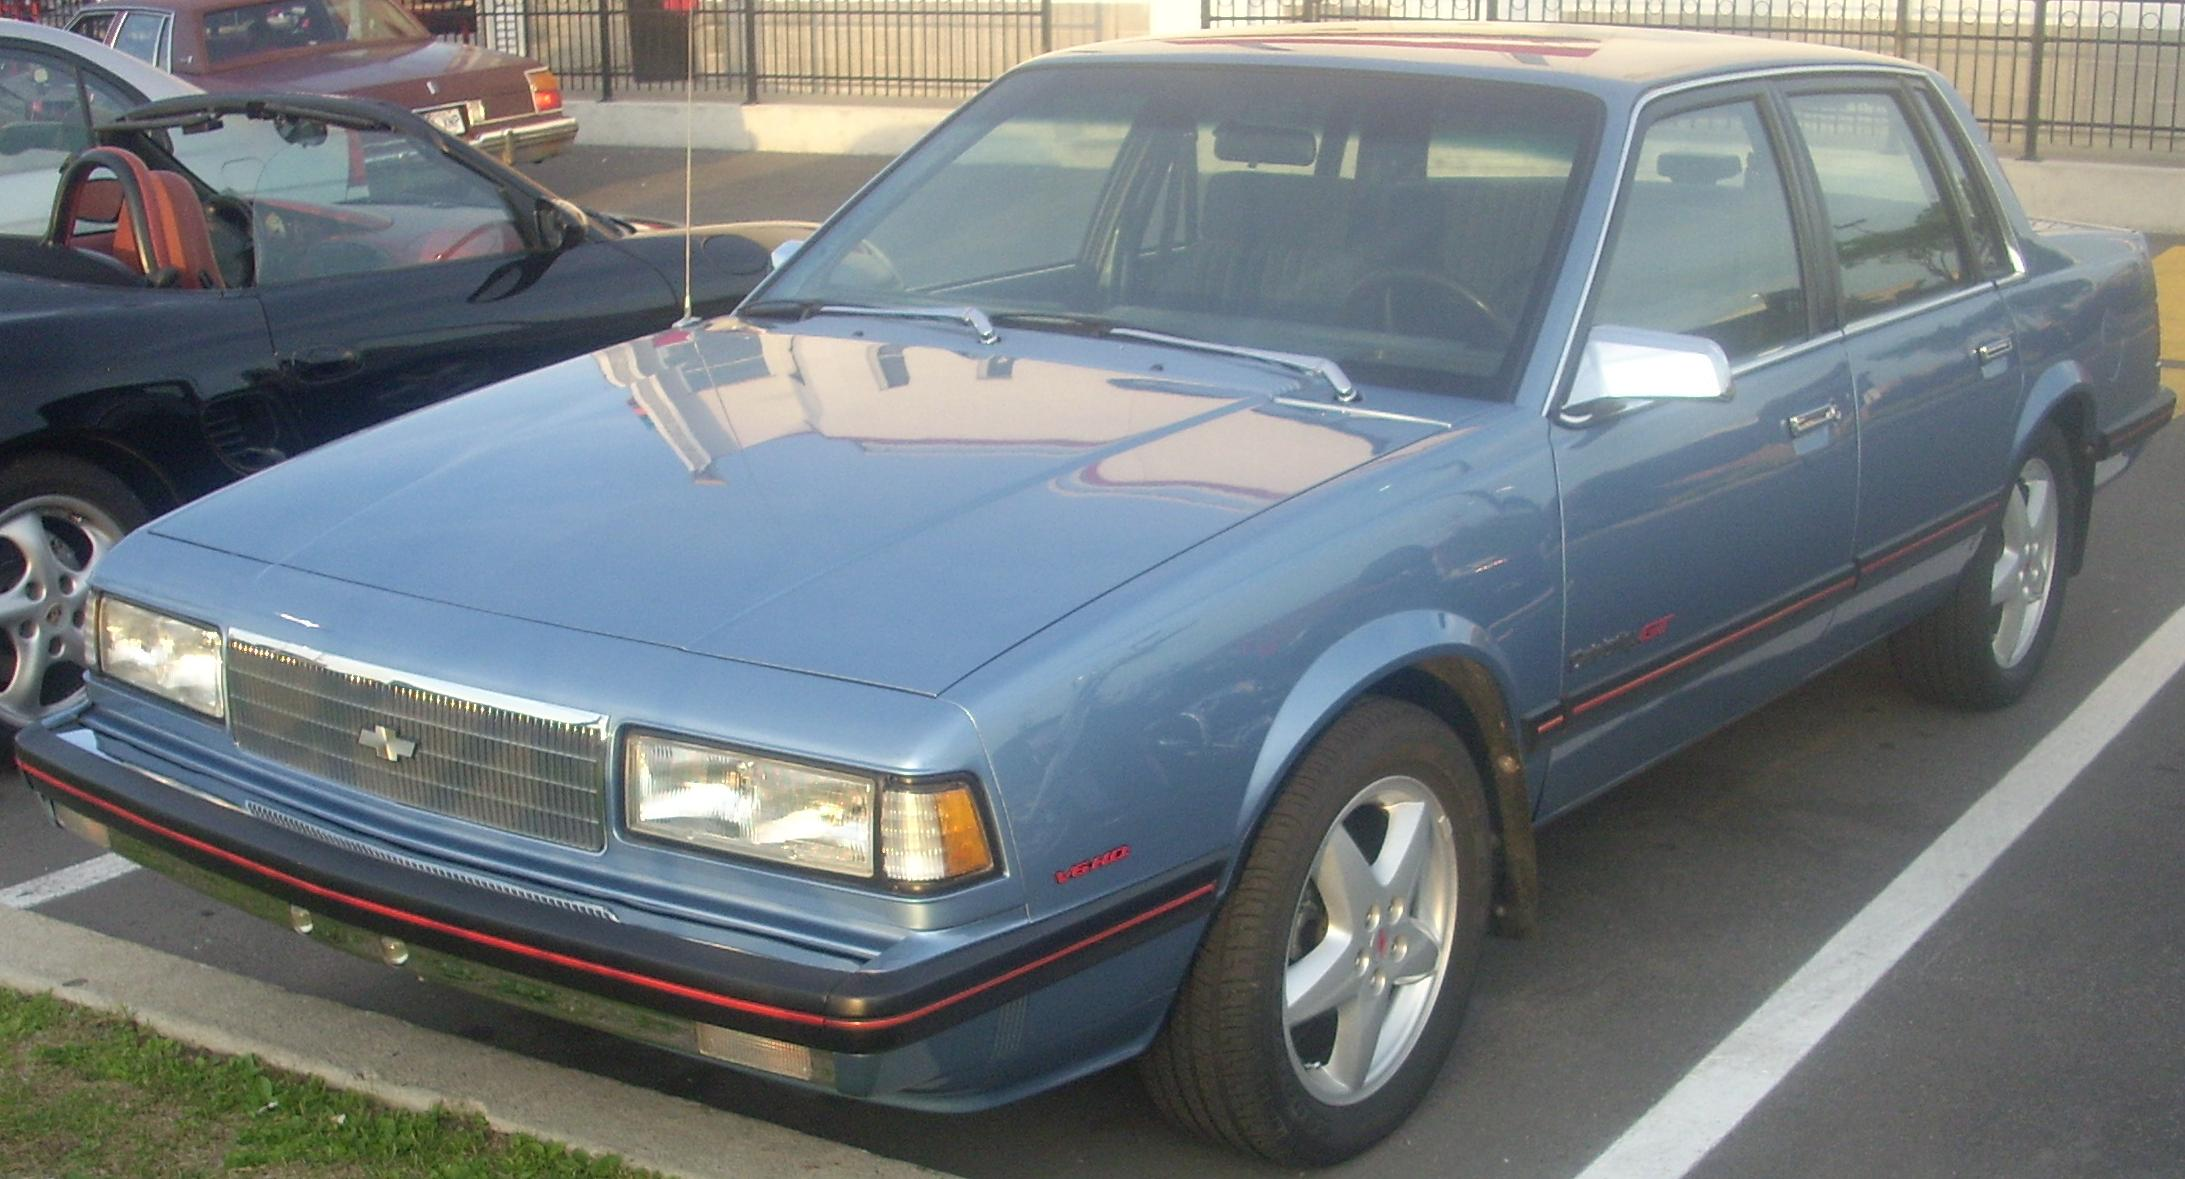 1987 Chevrolet Celebrity Reviews - Carsurvey.org